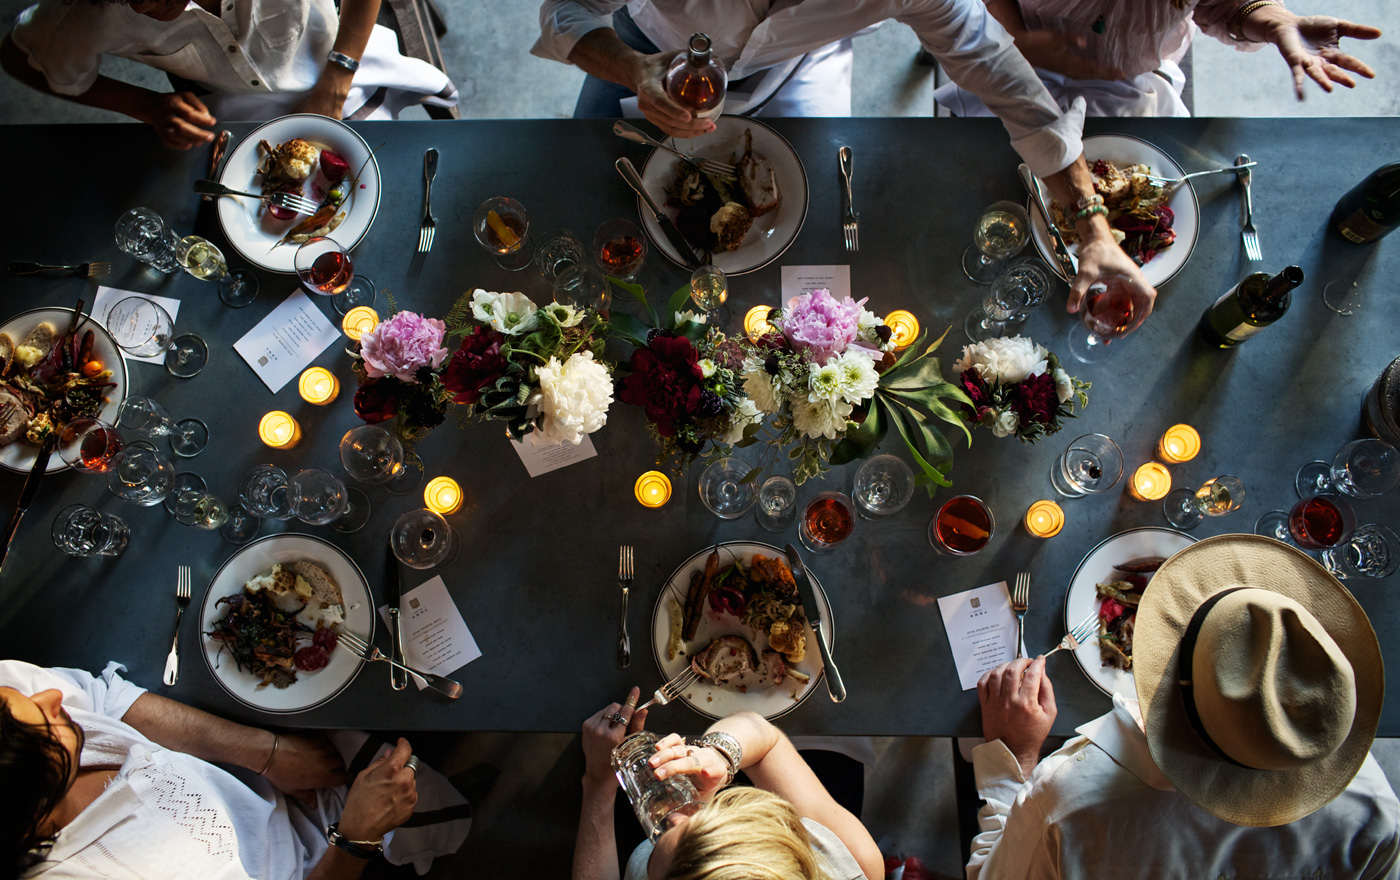 A picture of a grey table decorated with four flower bouquets and six friends eating around the table.